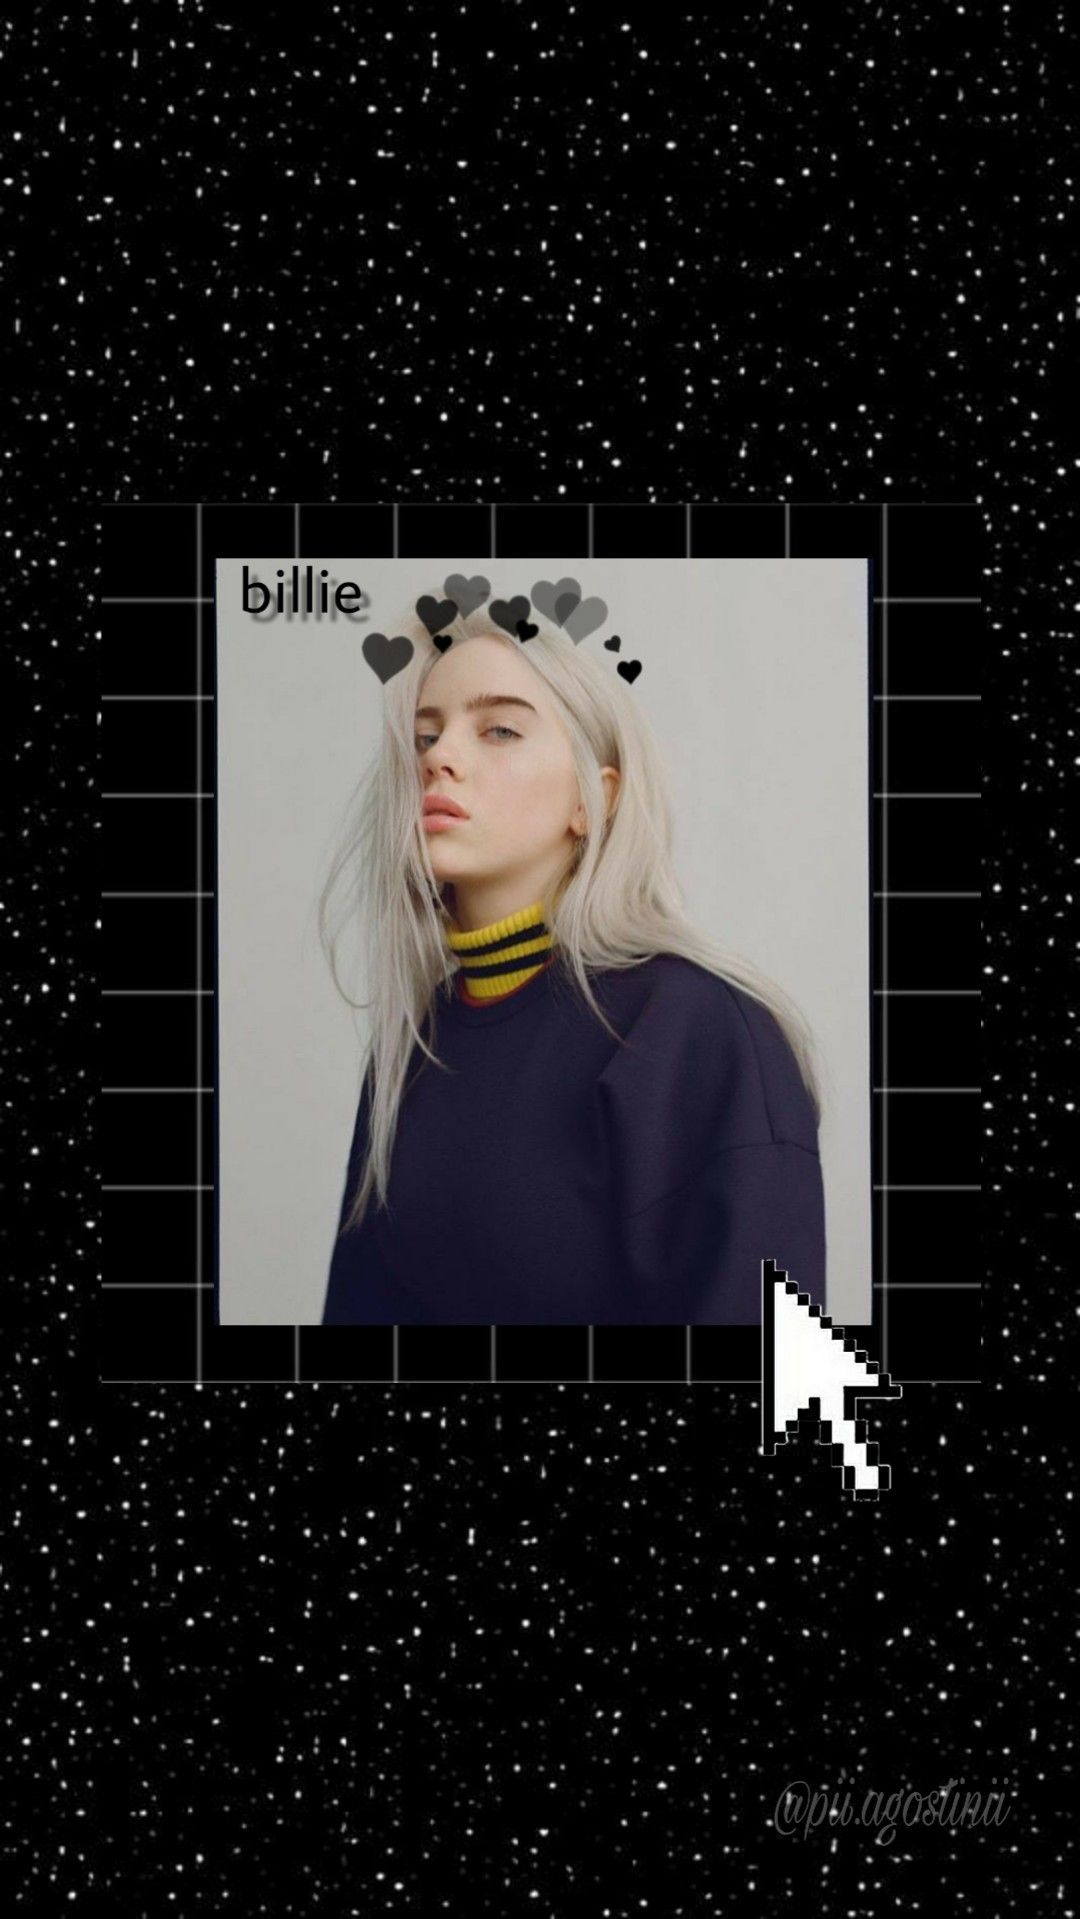 Billie Eilish Wallpaper Billie Eilish Billie Fotos De Desenhos Animados